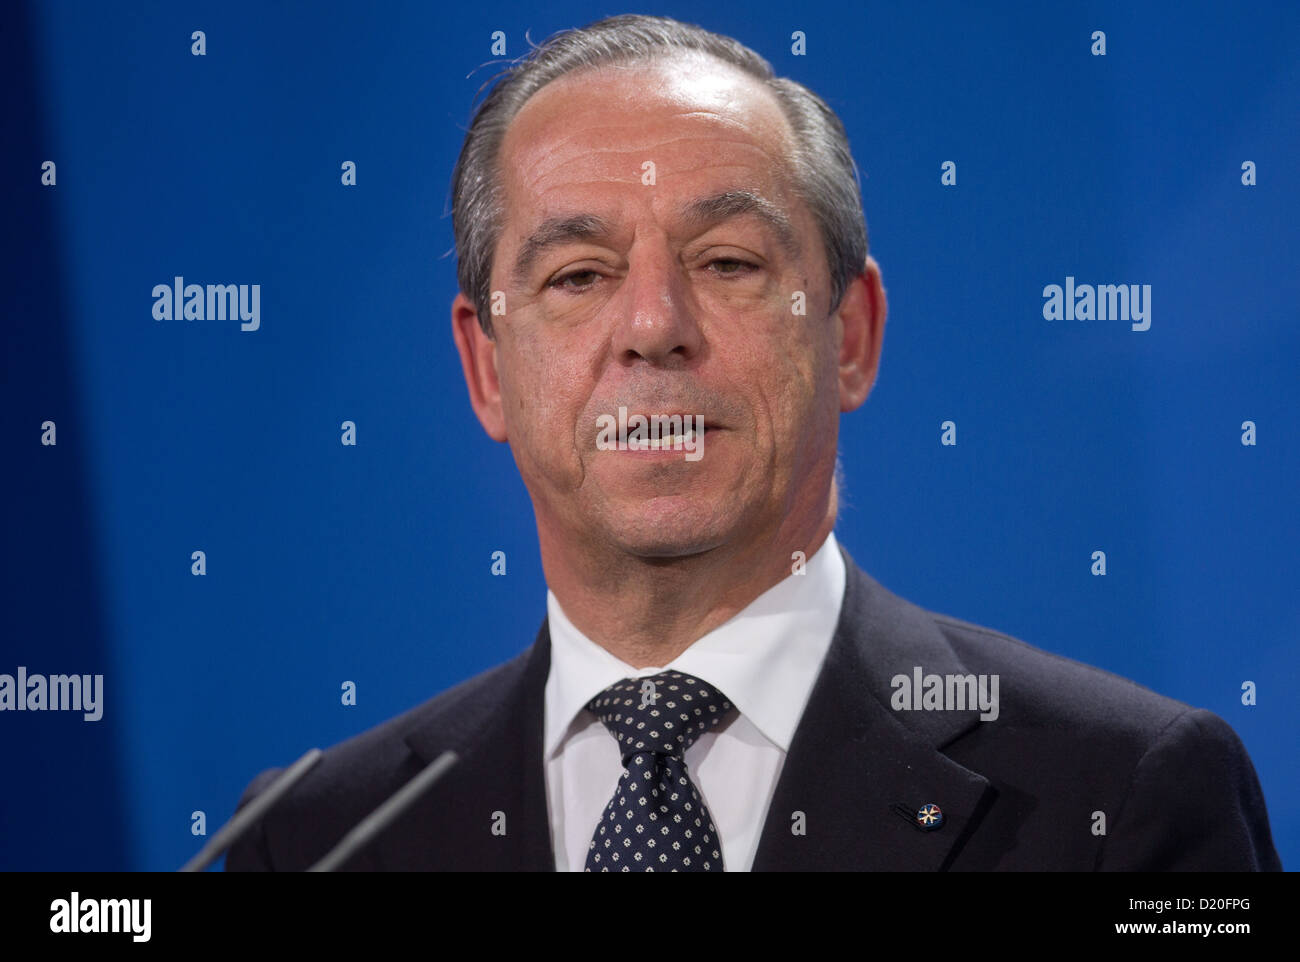 Prime Minister of Malta, Lawrence Gonzi, gives a press conference in Berlin, Germany, 09 January 2013. Gonzi met - Stock Image